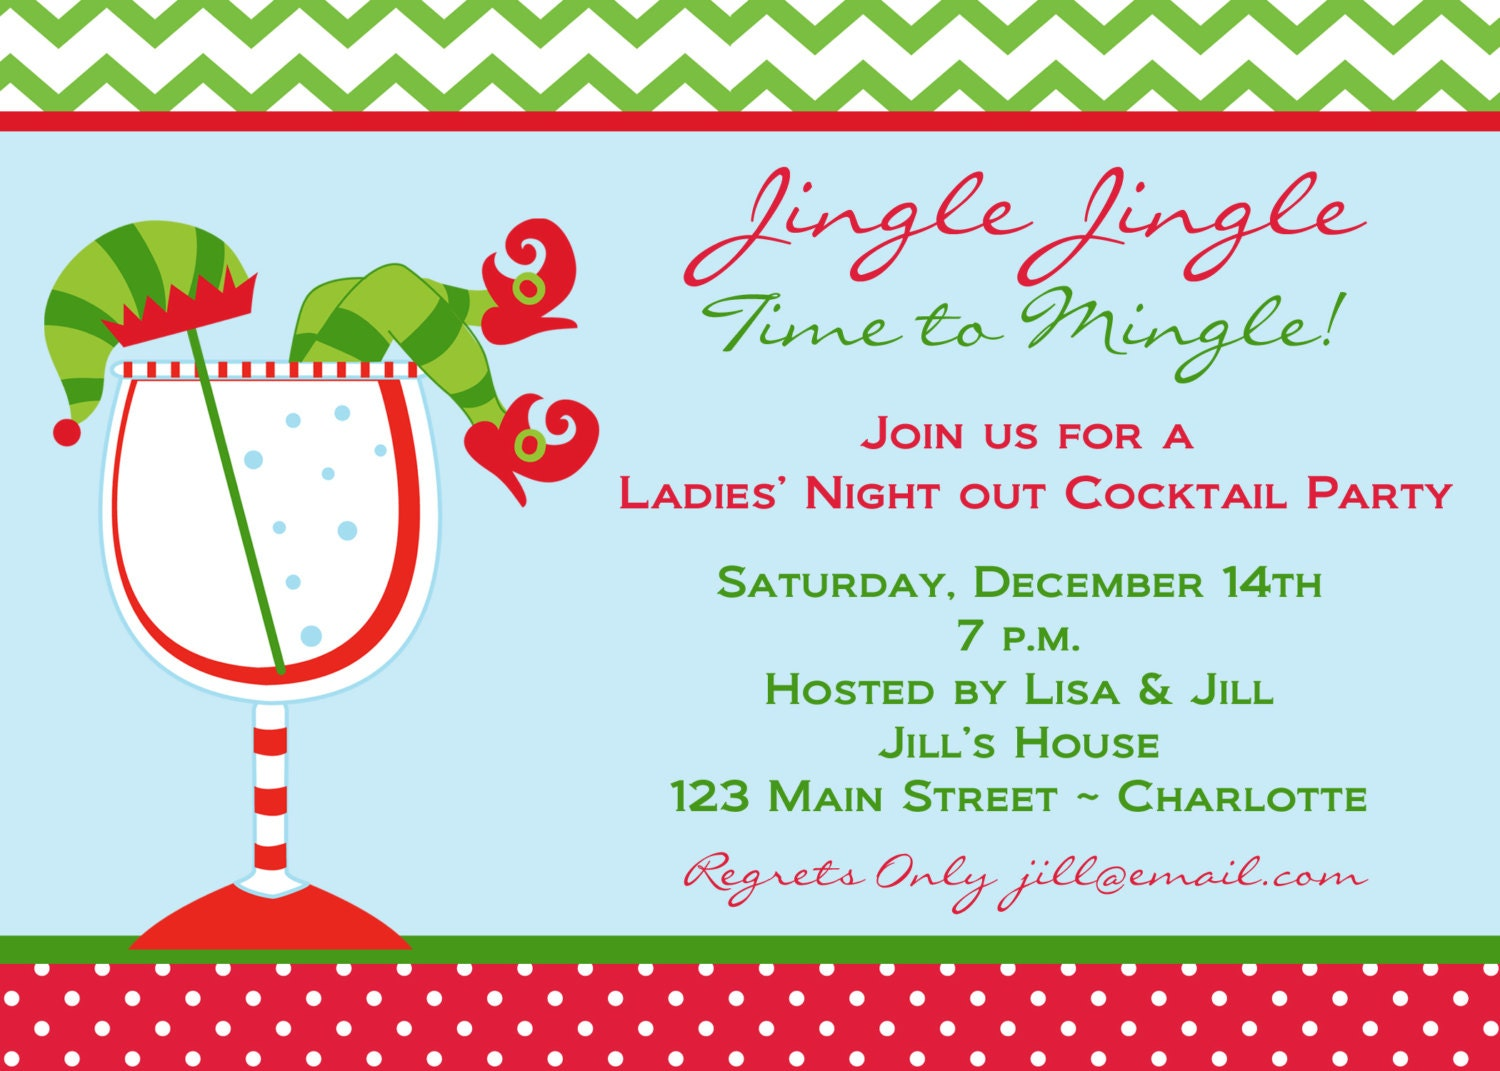 Christmas Cocktail Party Invitations is an amazing ideas you had to choose for invitation design